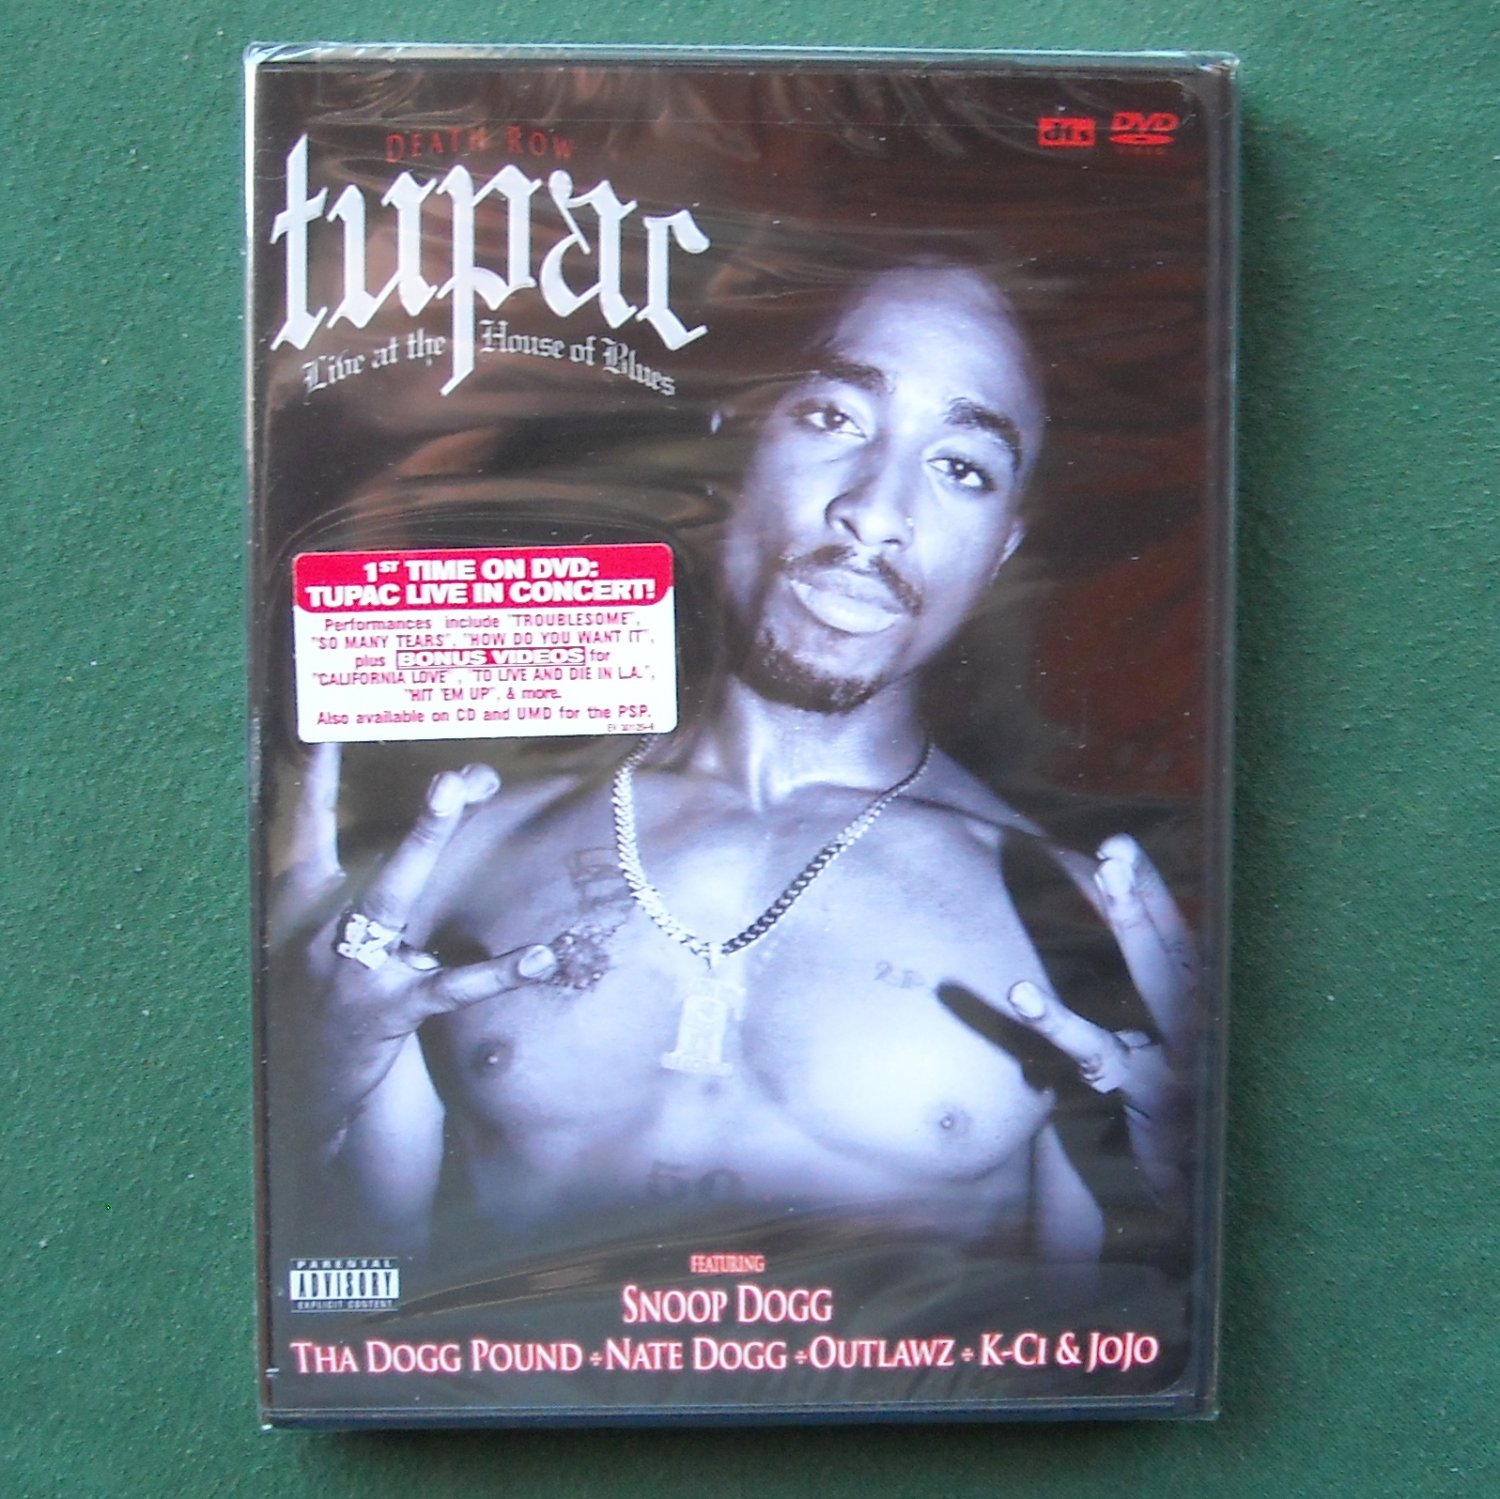 Death Row Tupac Shakur Live at the House of Blues Music DVD